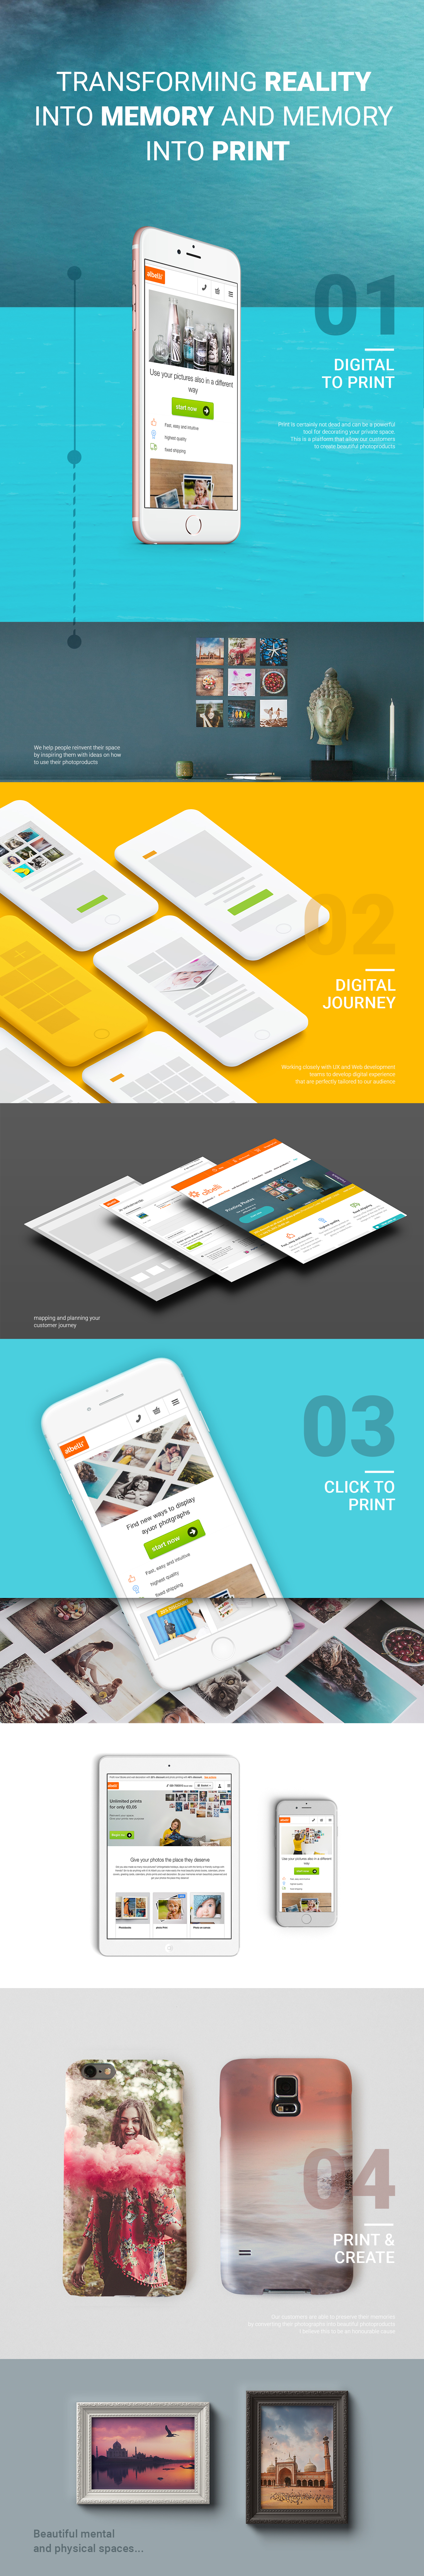 Product Photography campaign product UI/UX graphic design  story